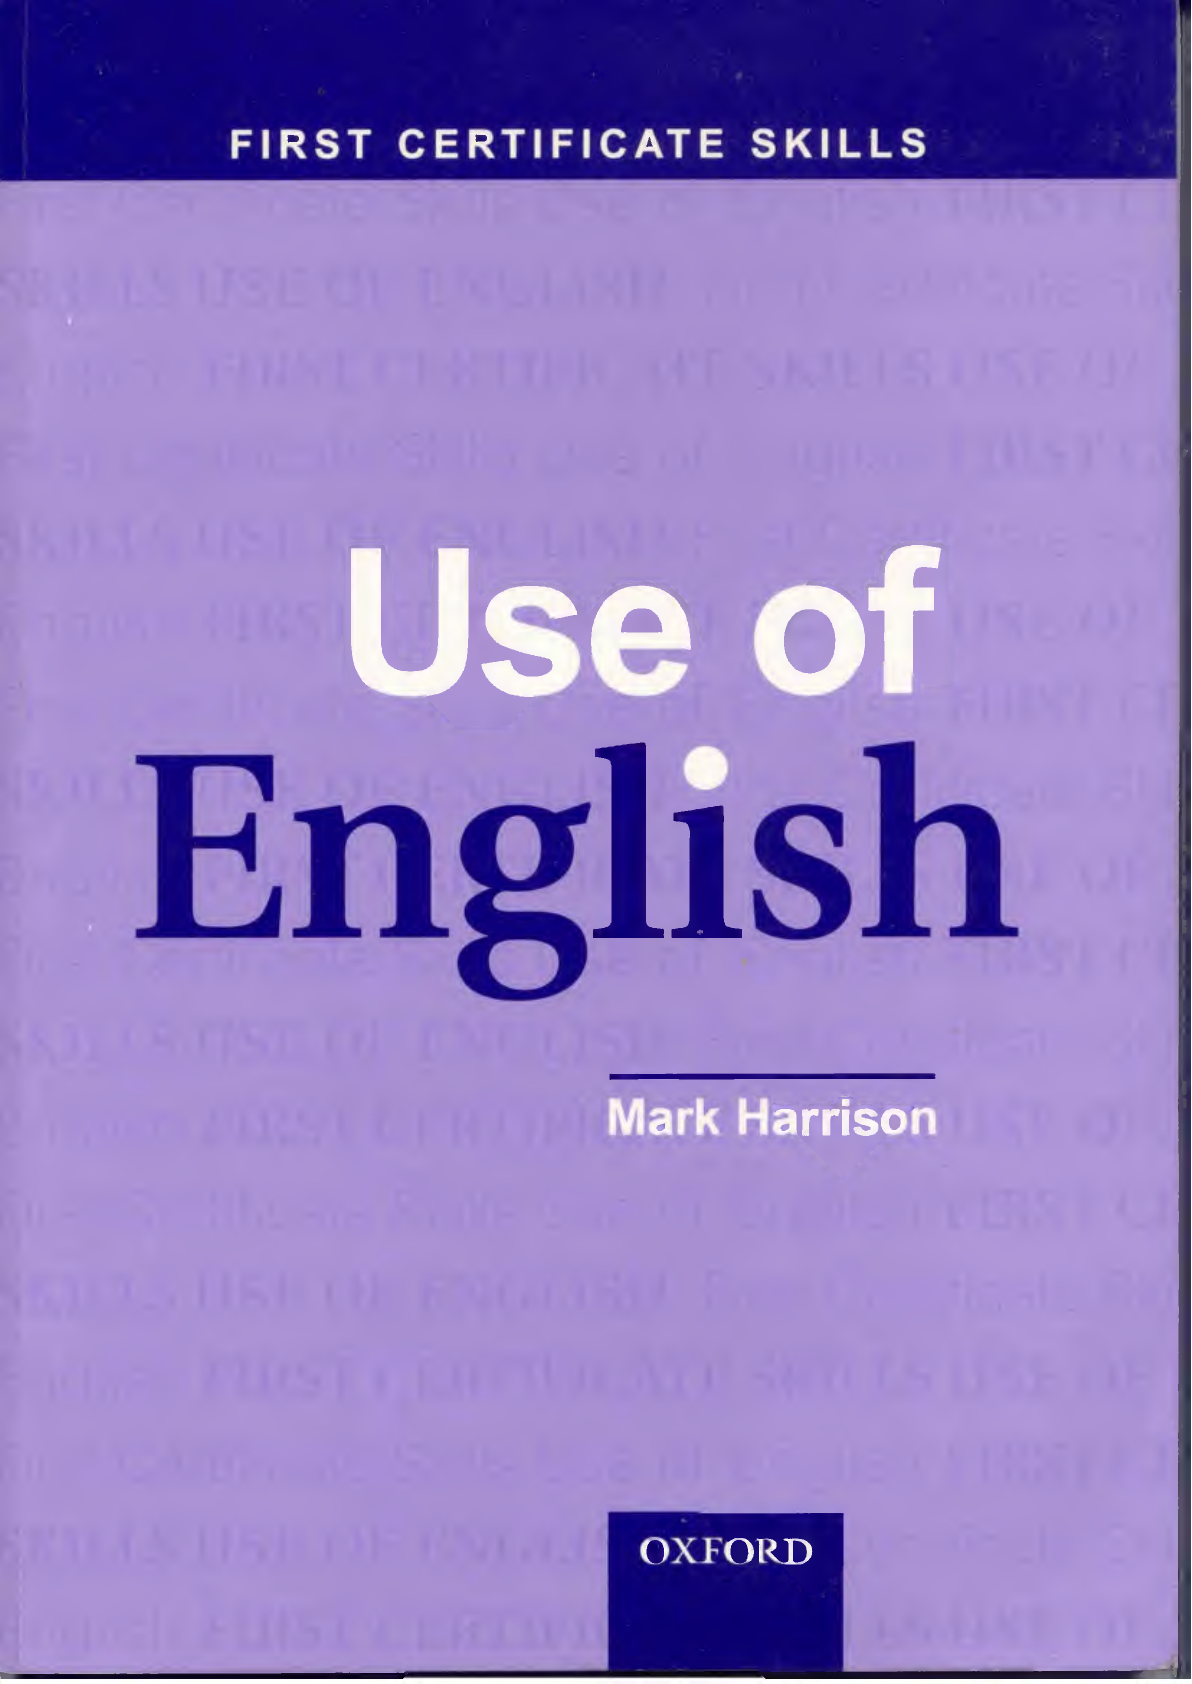 Use Of English Oxford Mark Harrison Pdf Document